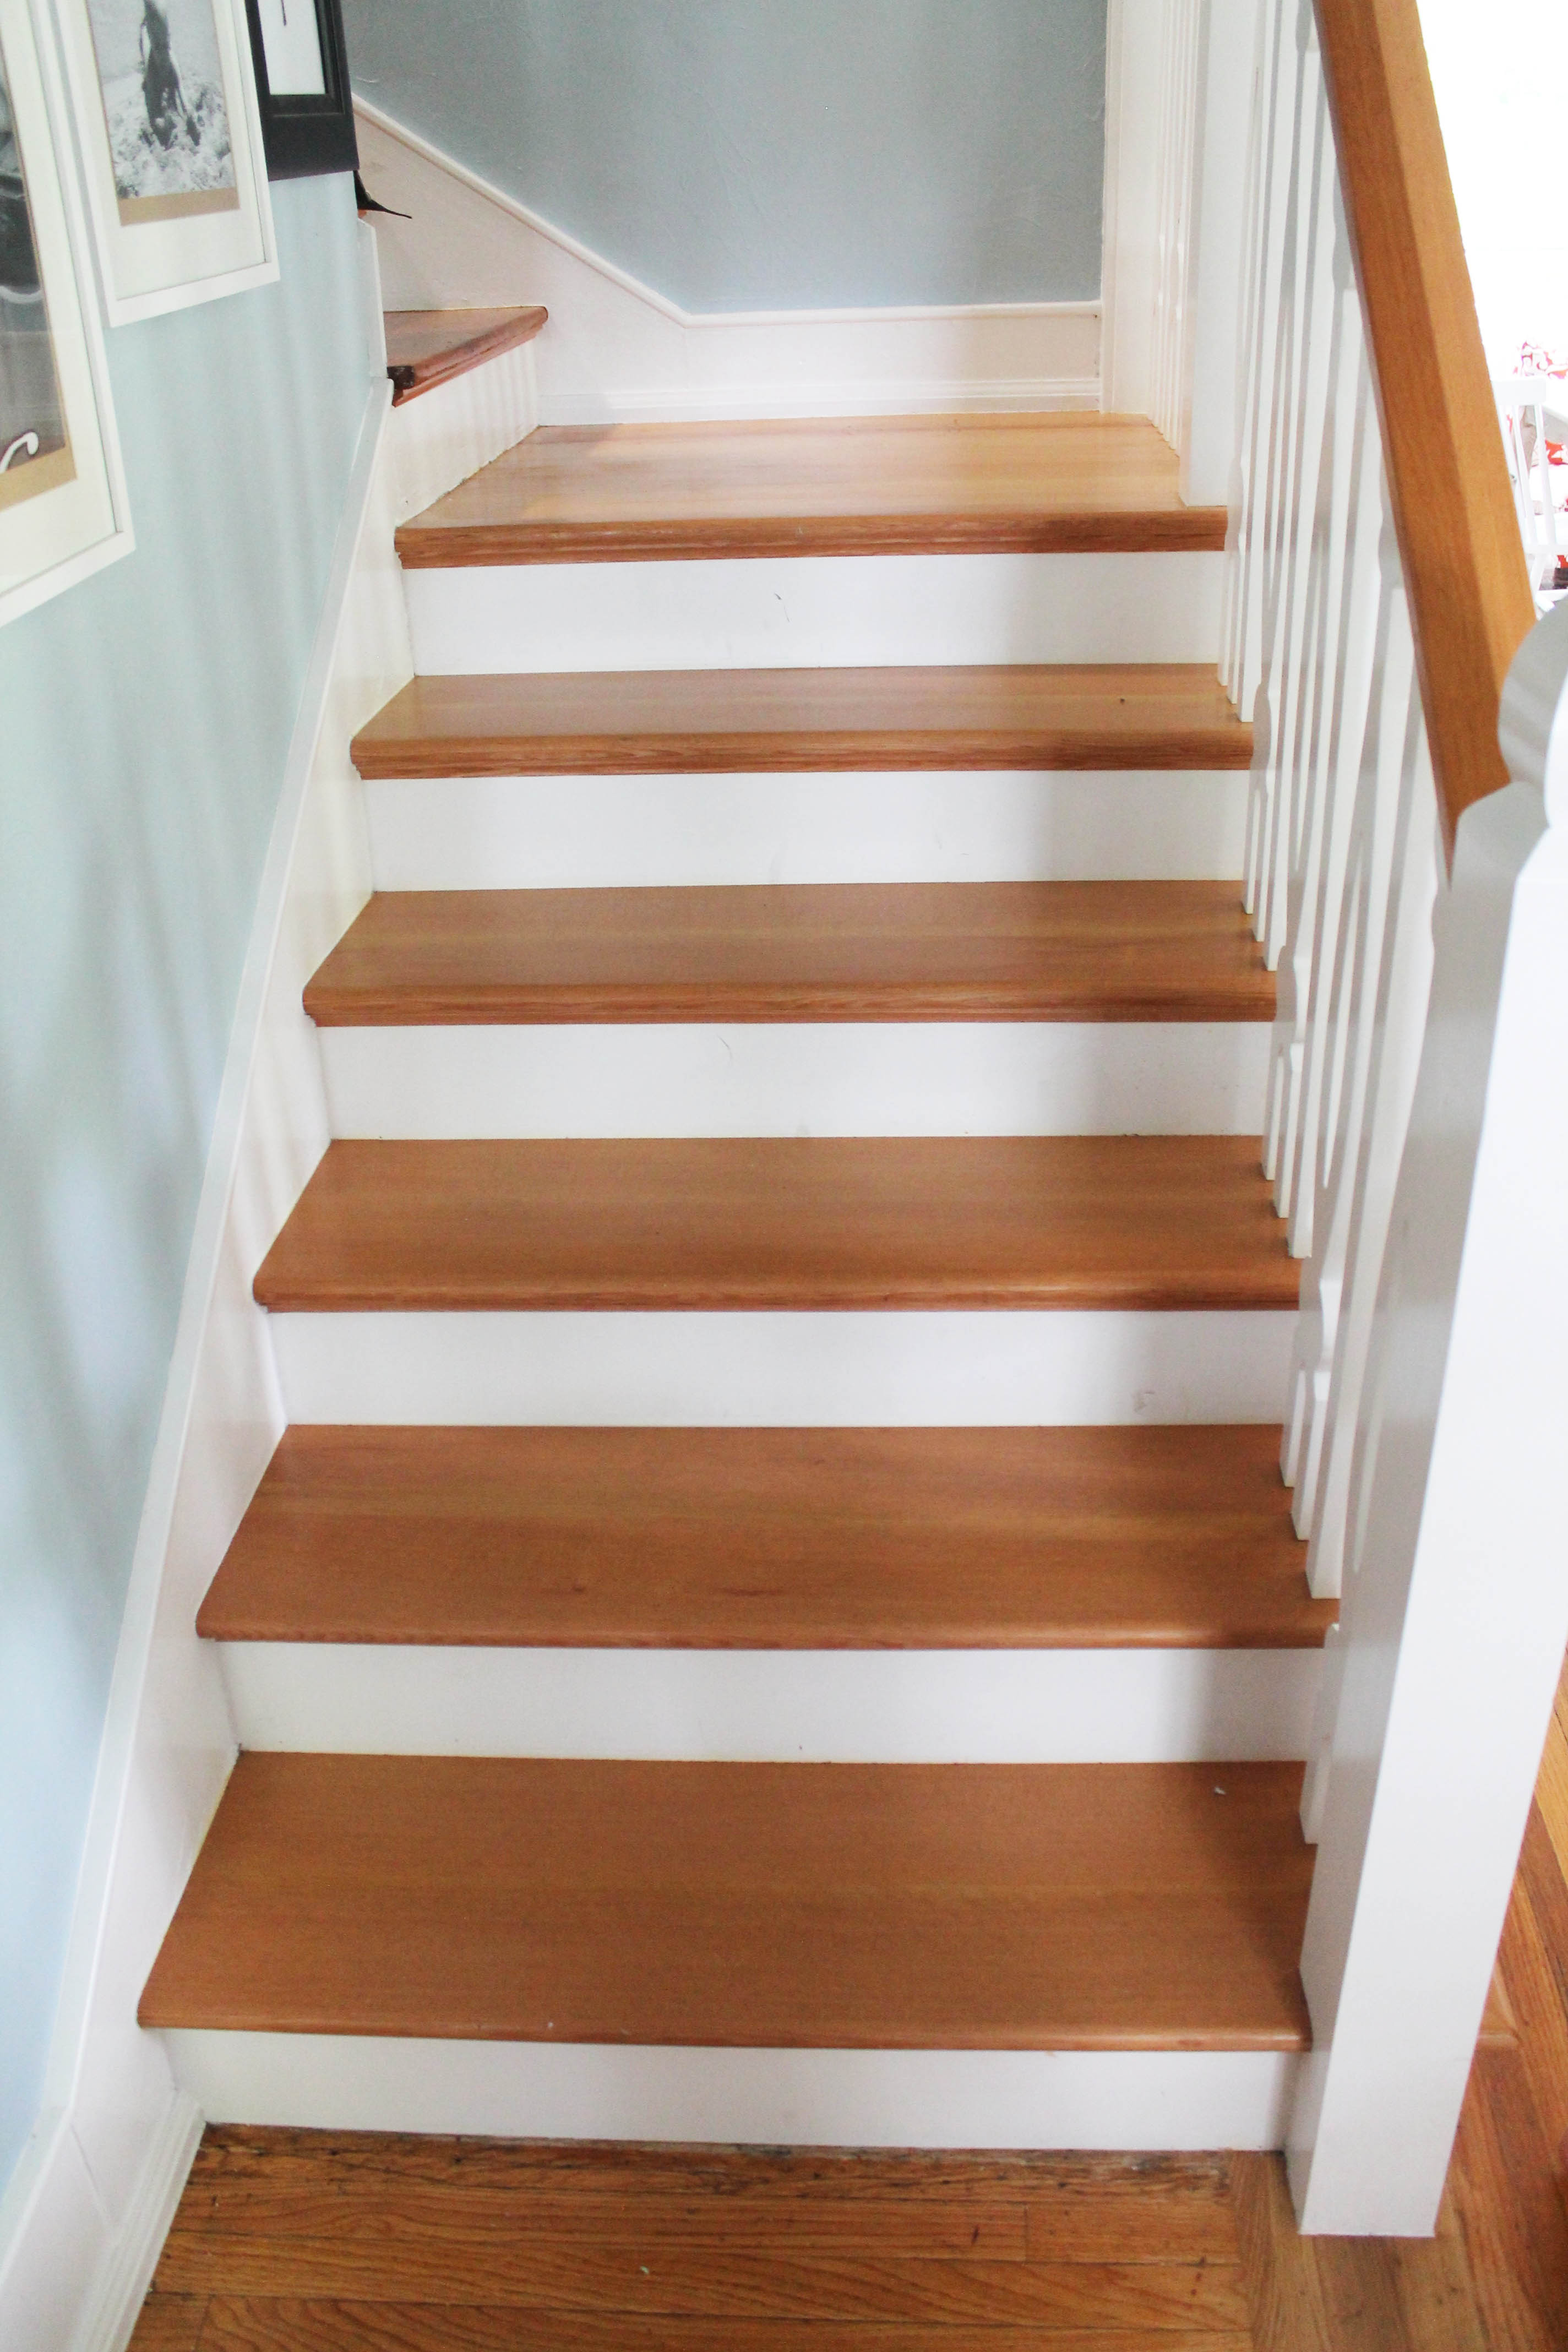 Captivating Stair Runners For Safety And Looks Boulevard West: Is Wood Laminate Stairs  Slippery At BeautyGirl